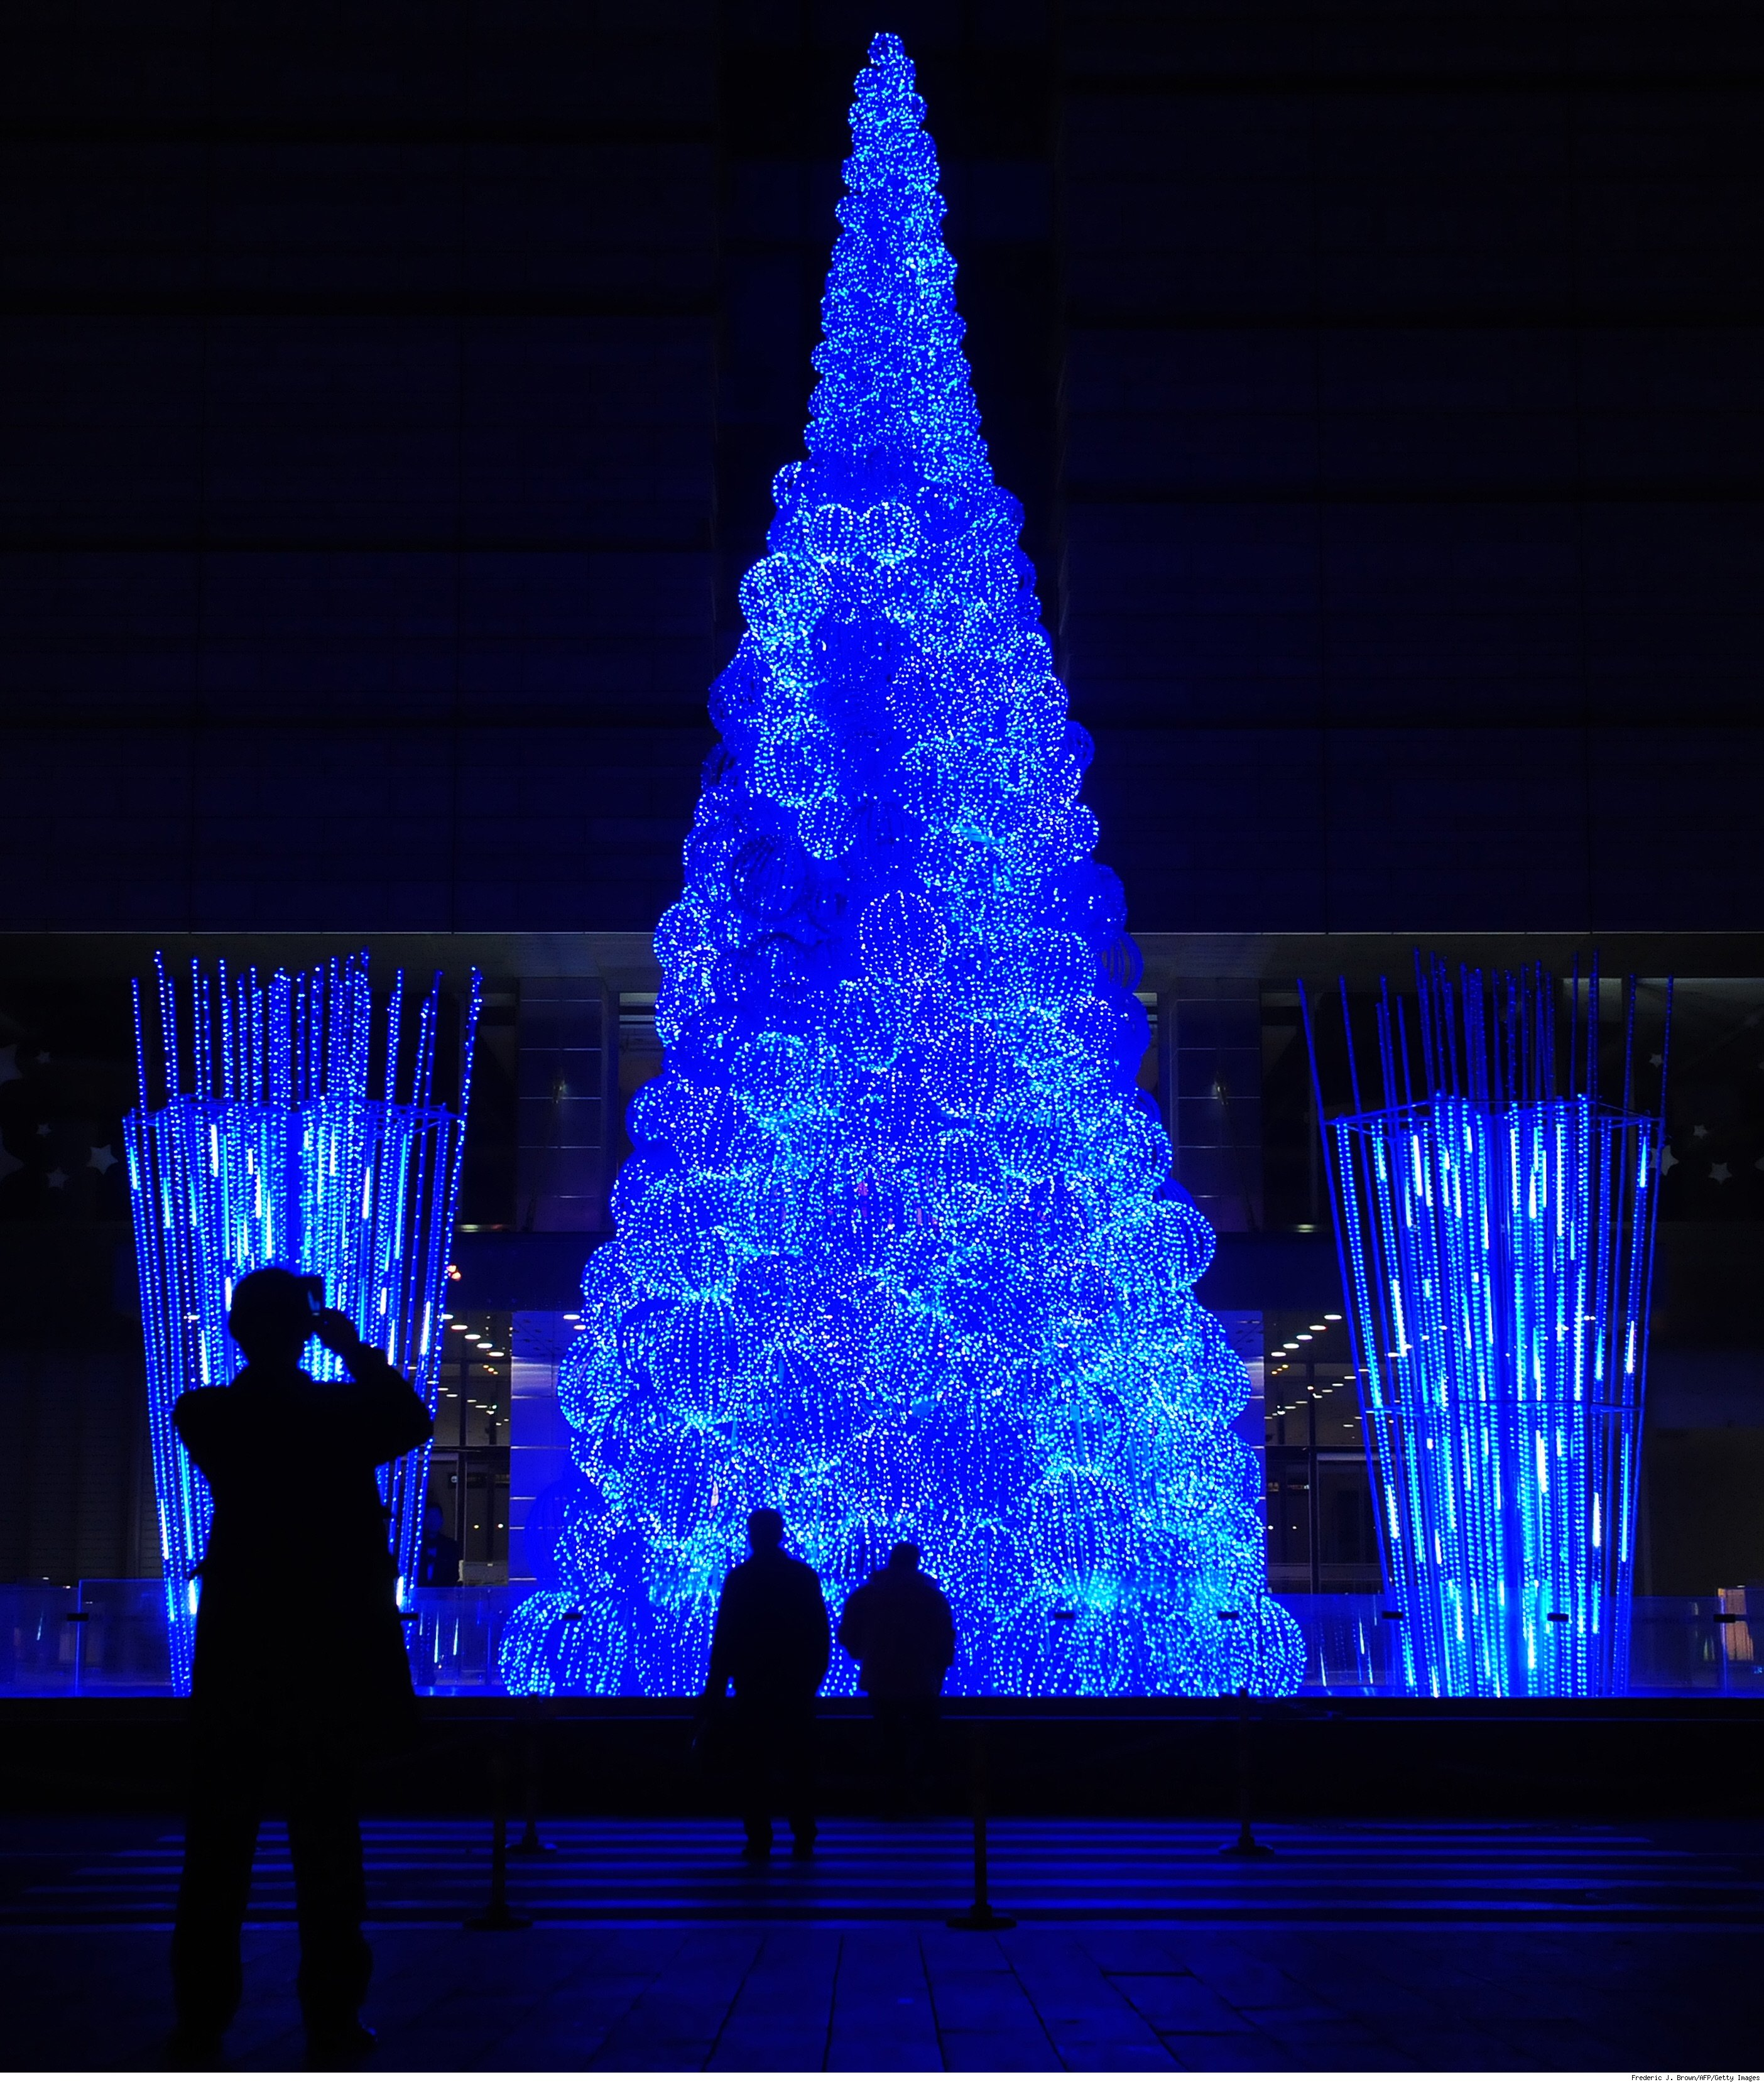 Beijing's Fiber Optic Christmas Tree